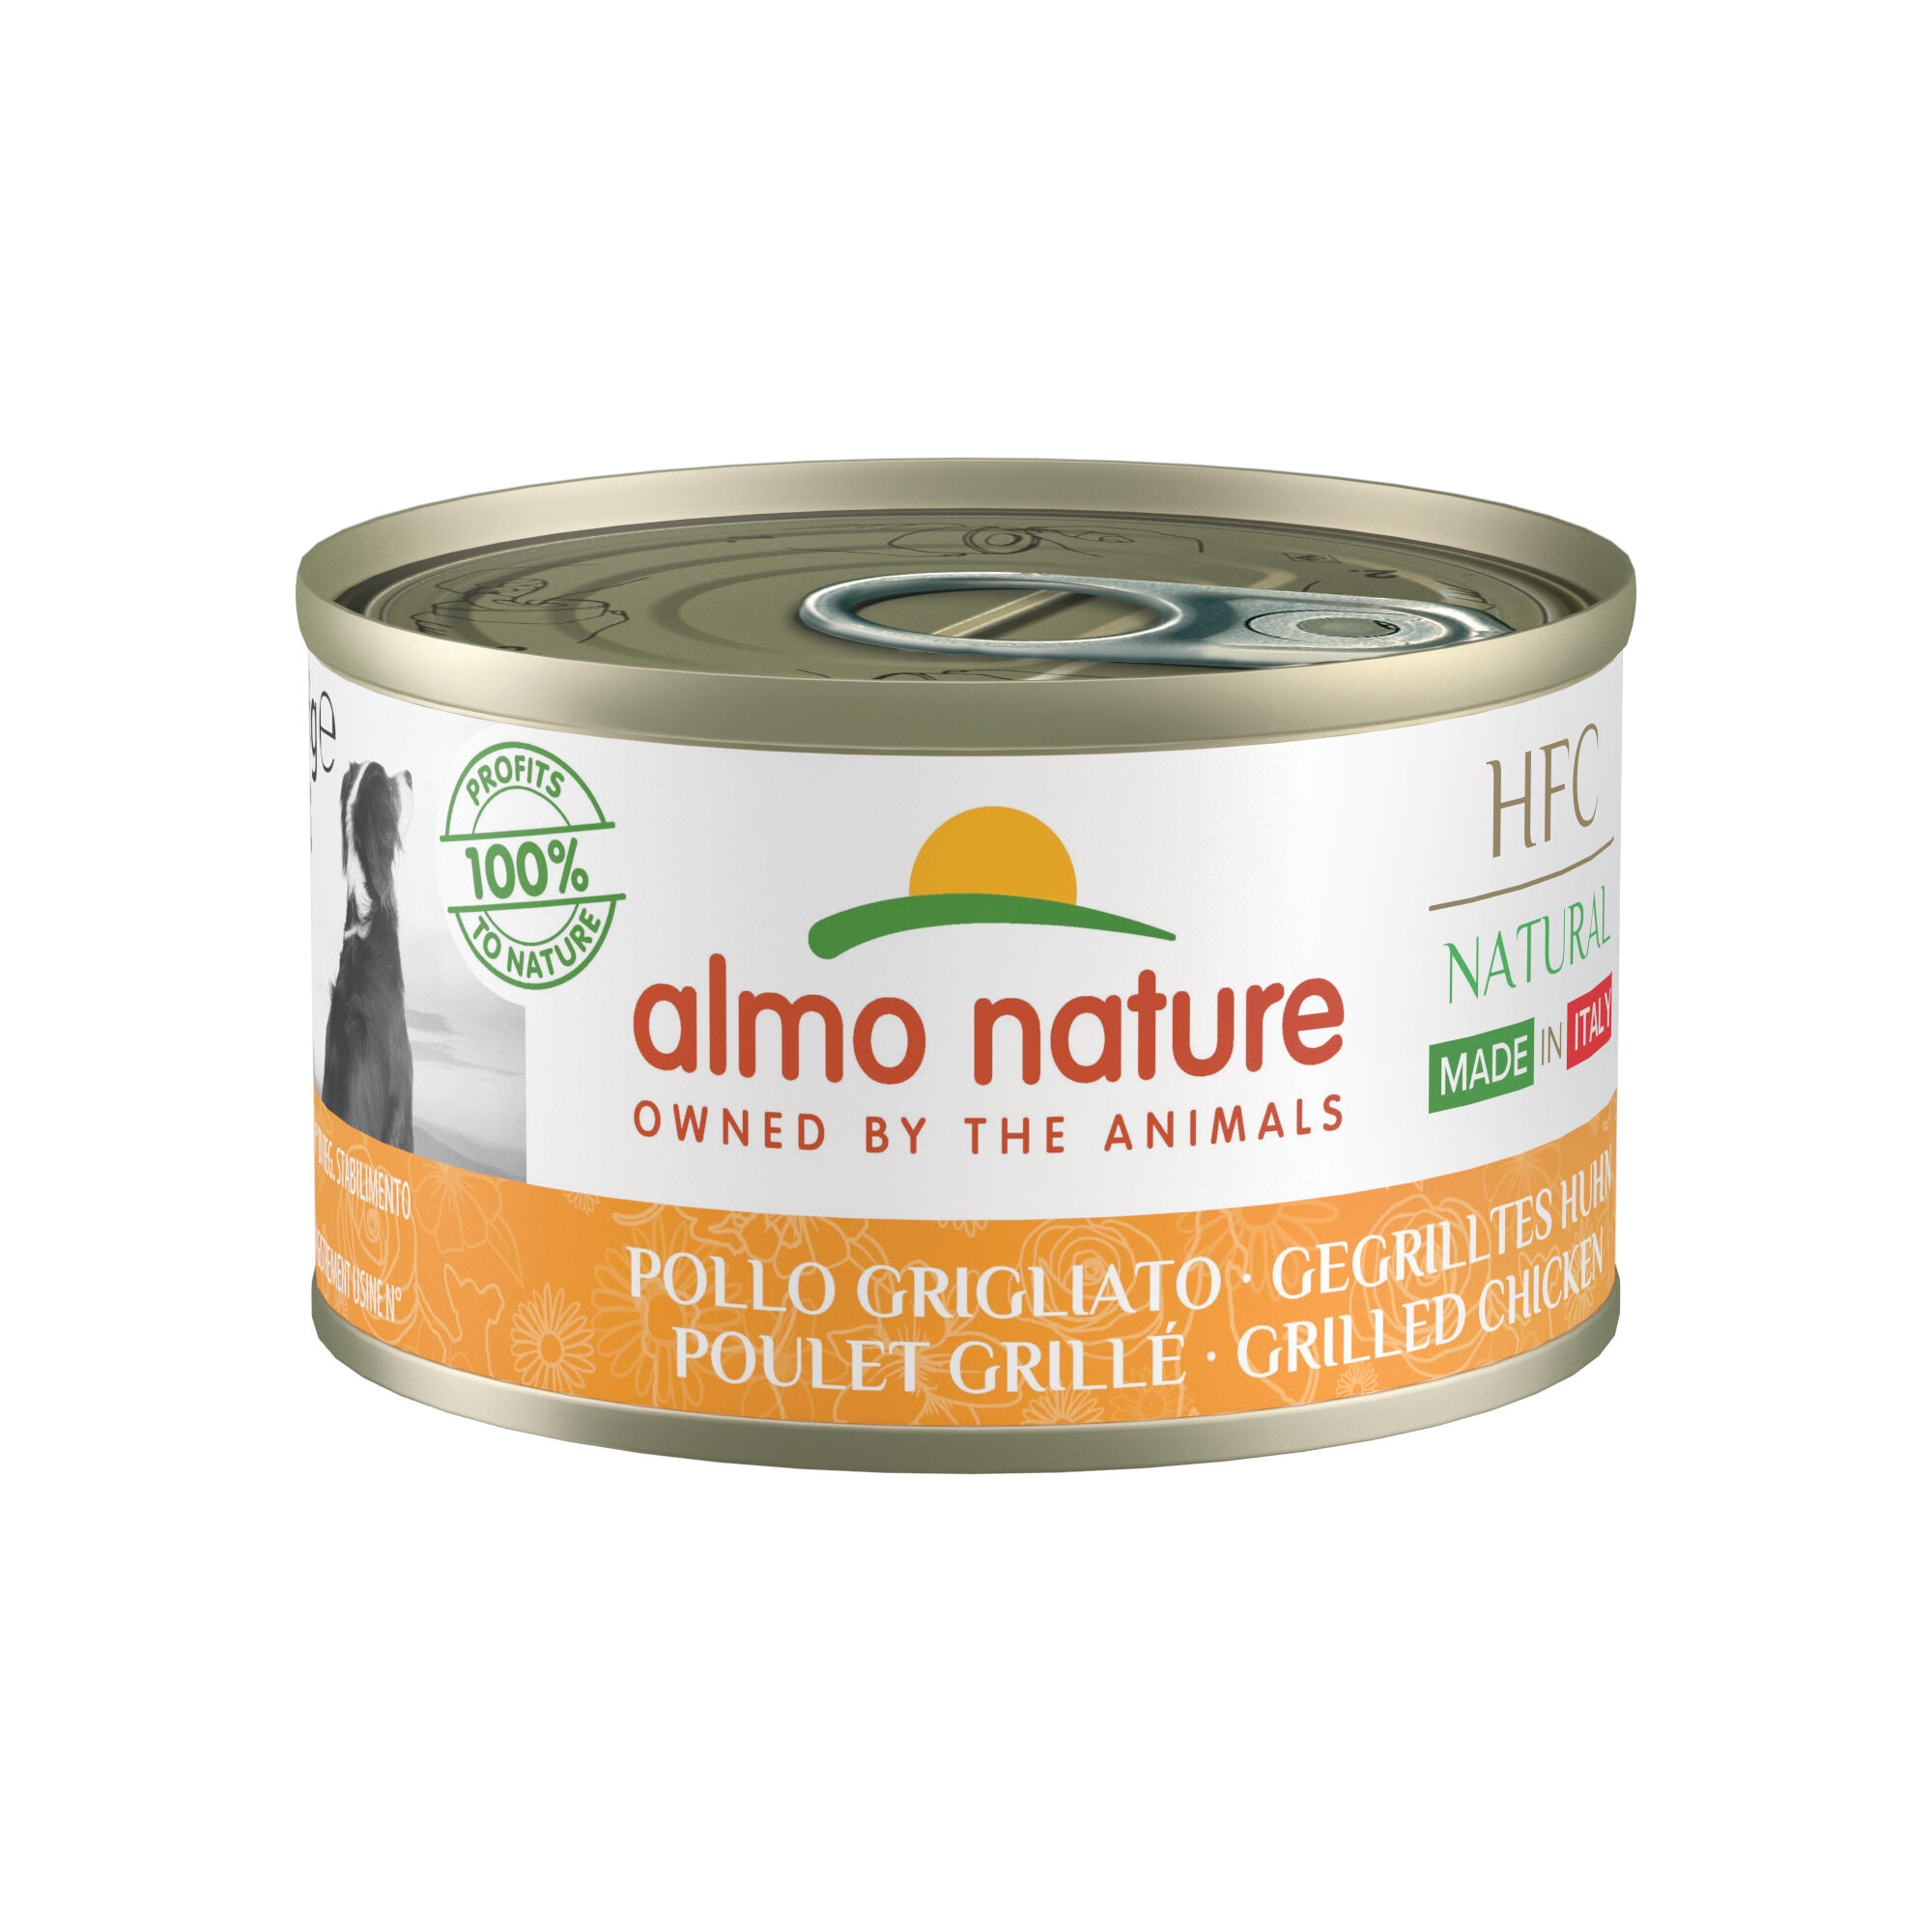 Almo Nature HFC Natural Made in Italy Alimentation pour chien - Poulet gril - 24 x 95 g